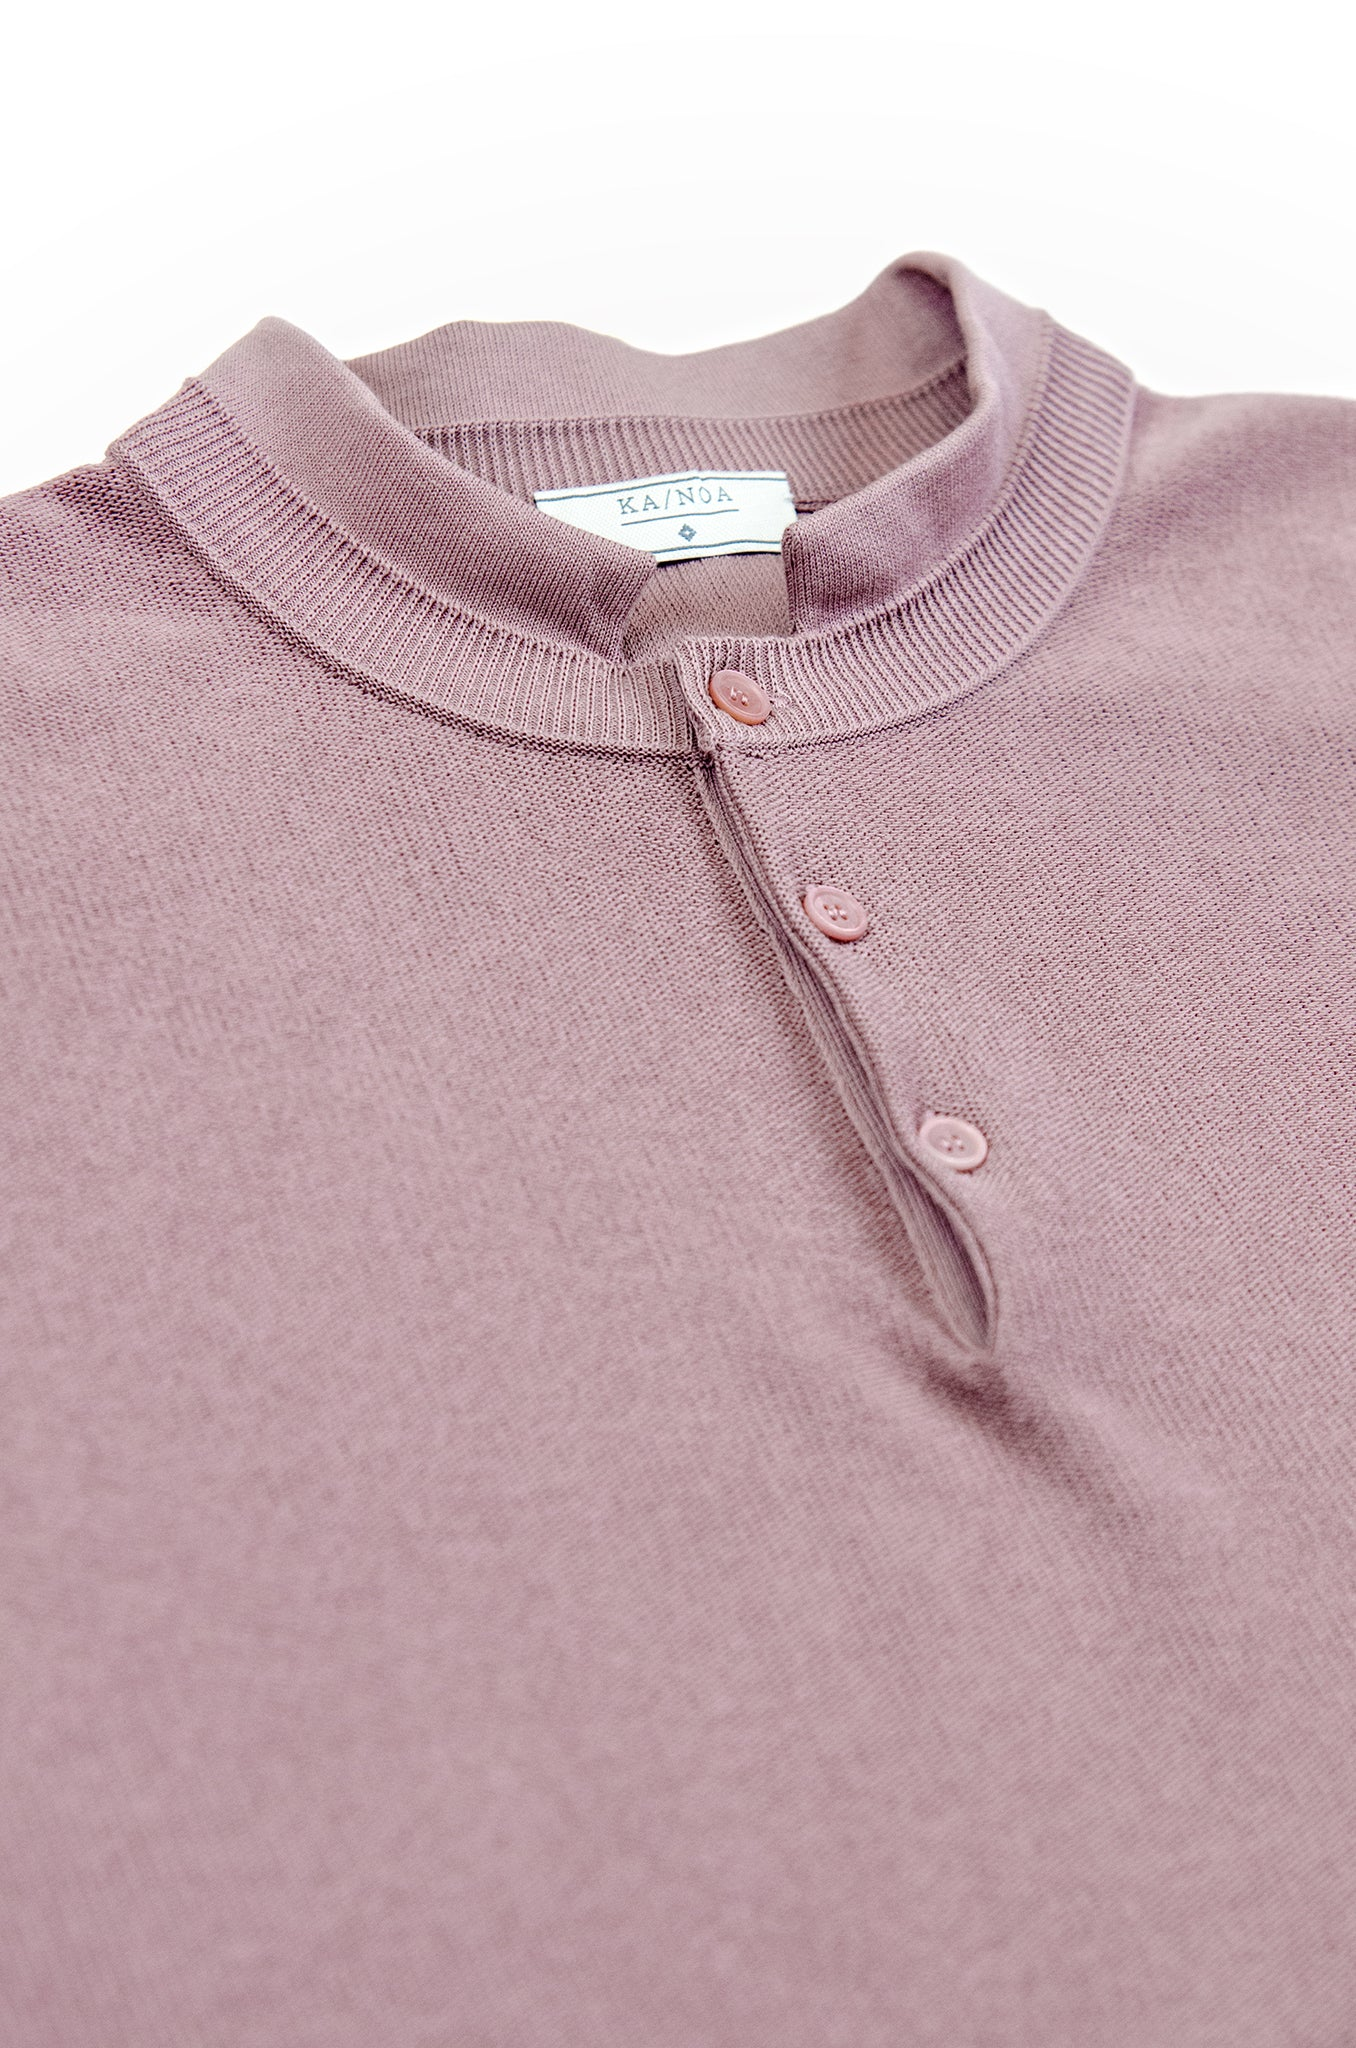 Maté polo tricot compact cotton (antique rose)